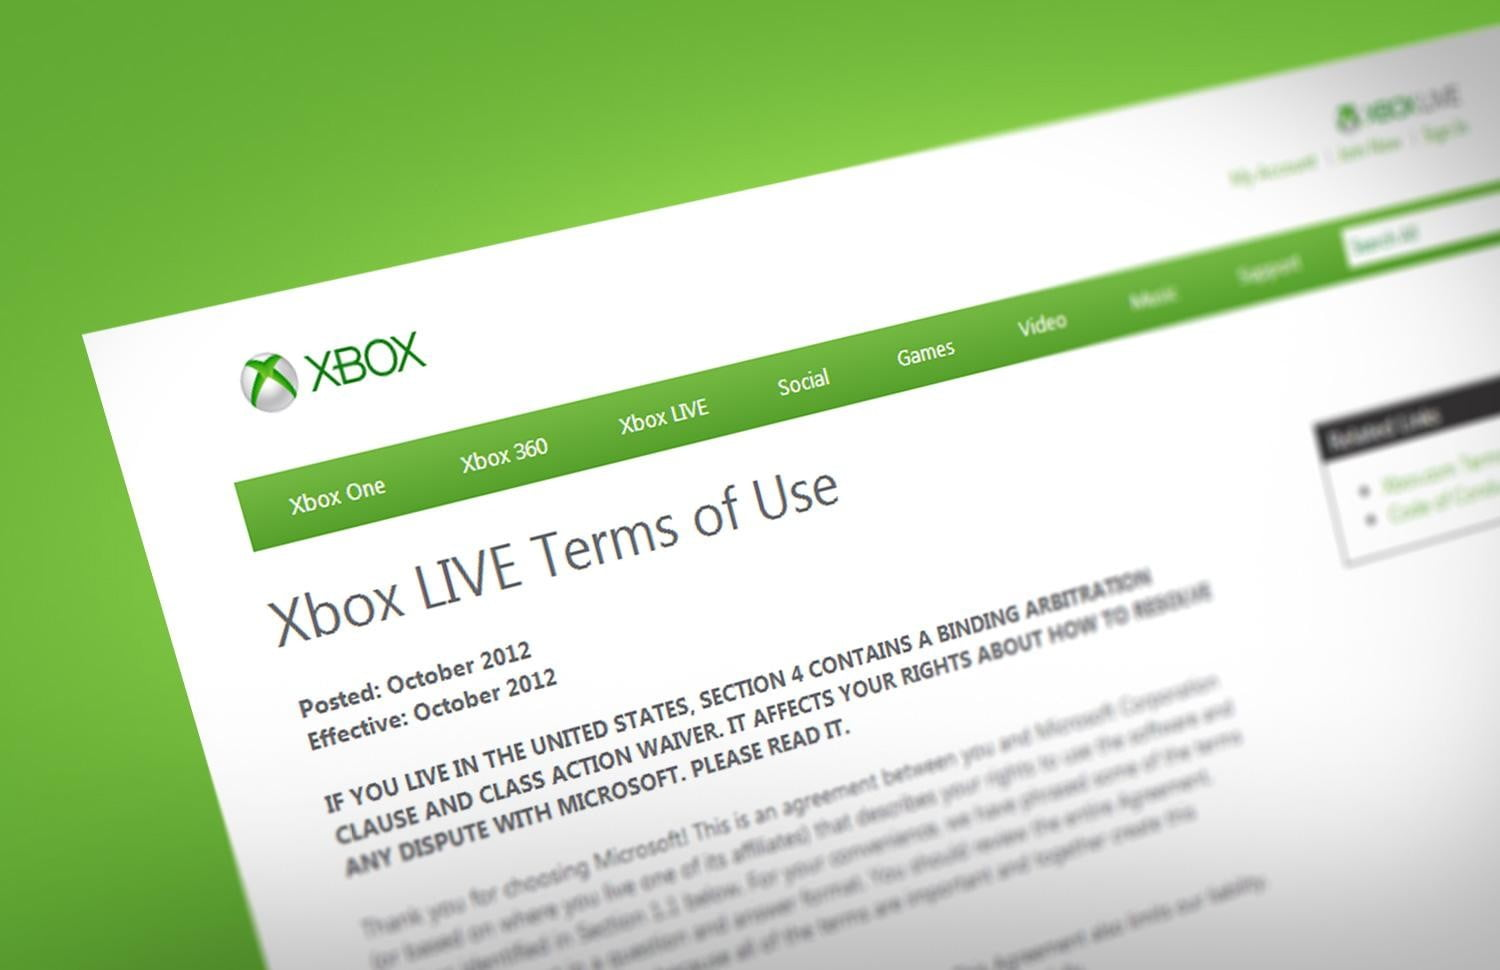 Terms & Conditions: Xbox Live and Kinect pose real privacy